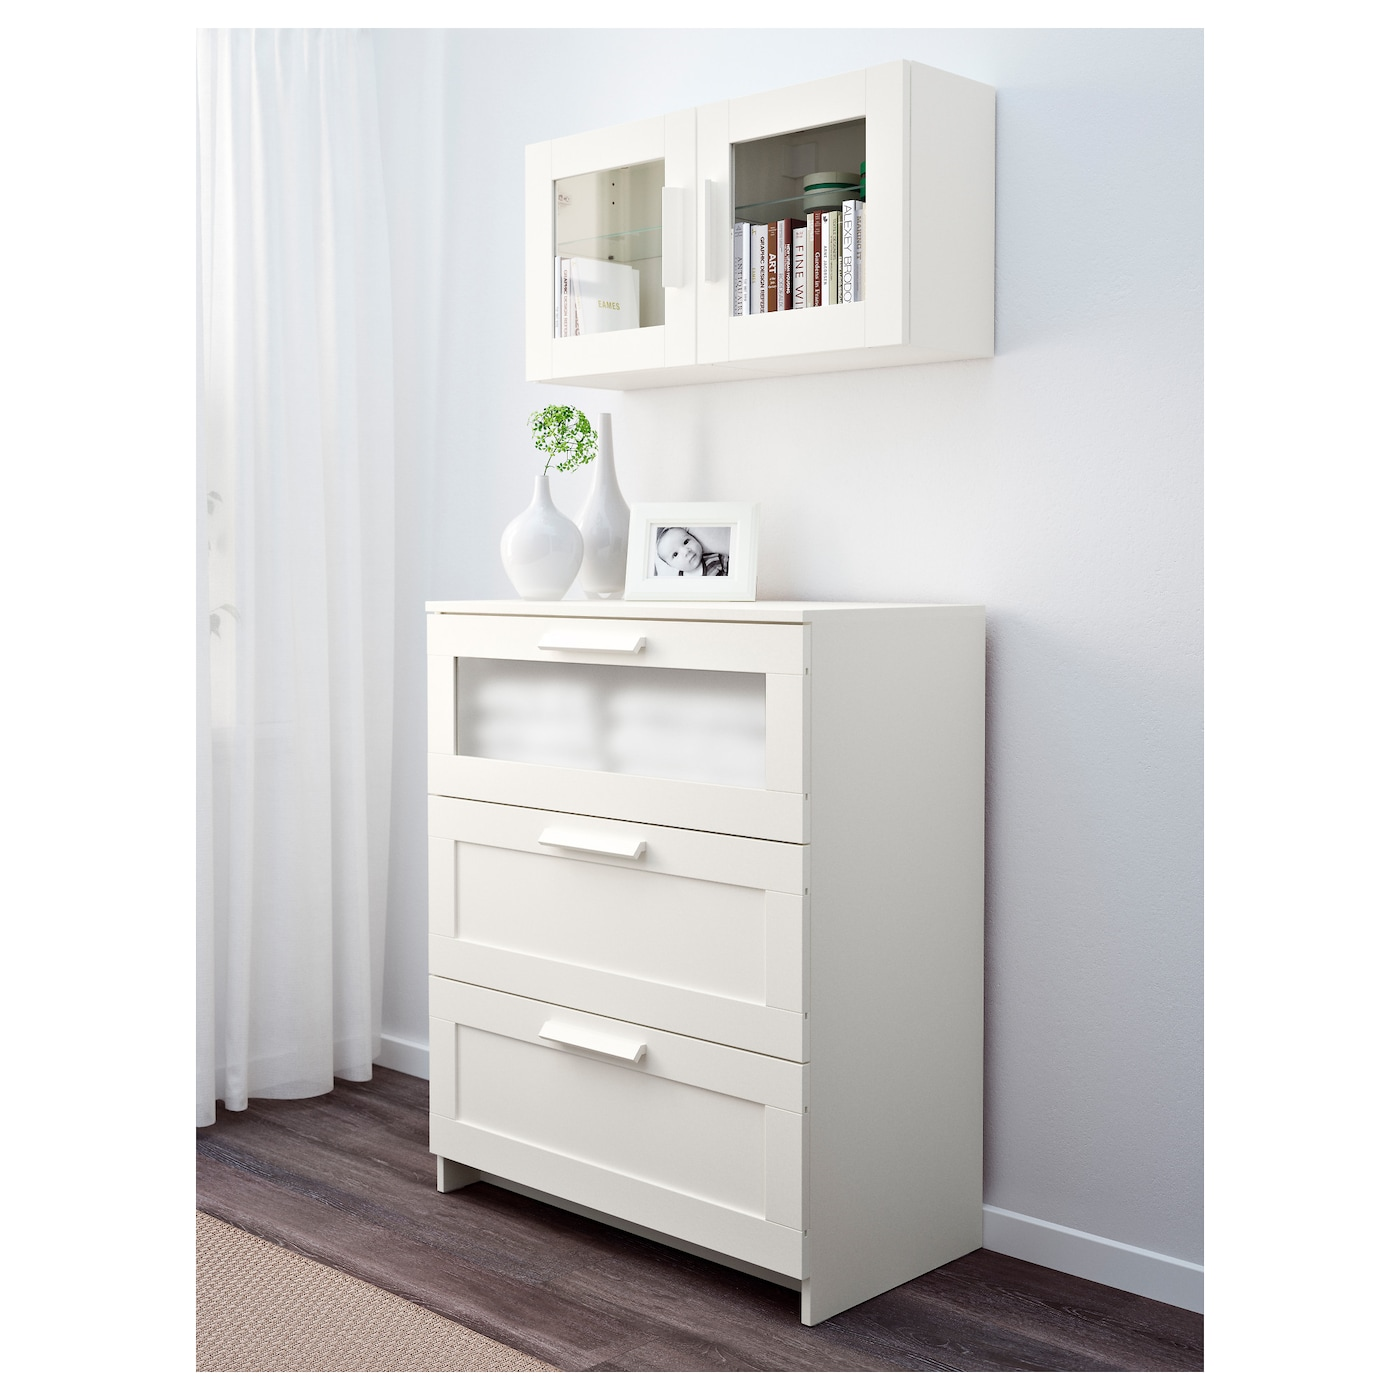 brimnes wall cabinet with glass door white 39 x 39 cm ikea. Black Bedroom Furniture Sets. Home Design Ideas